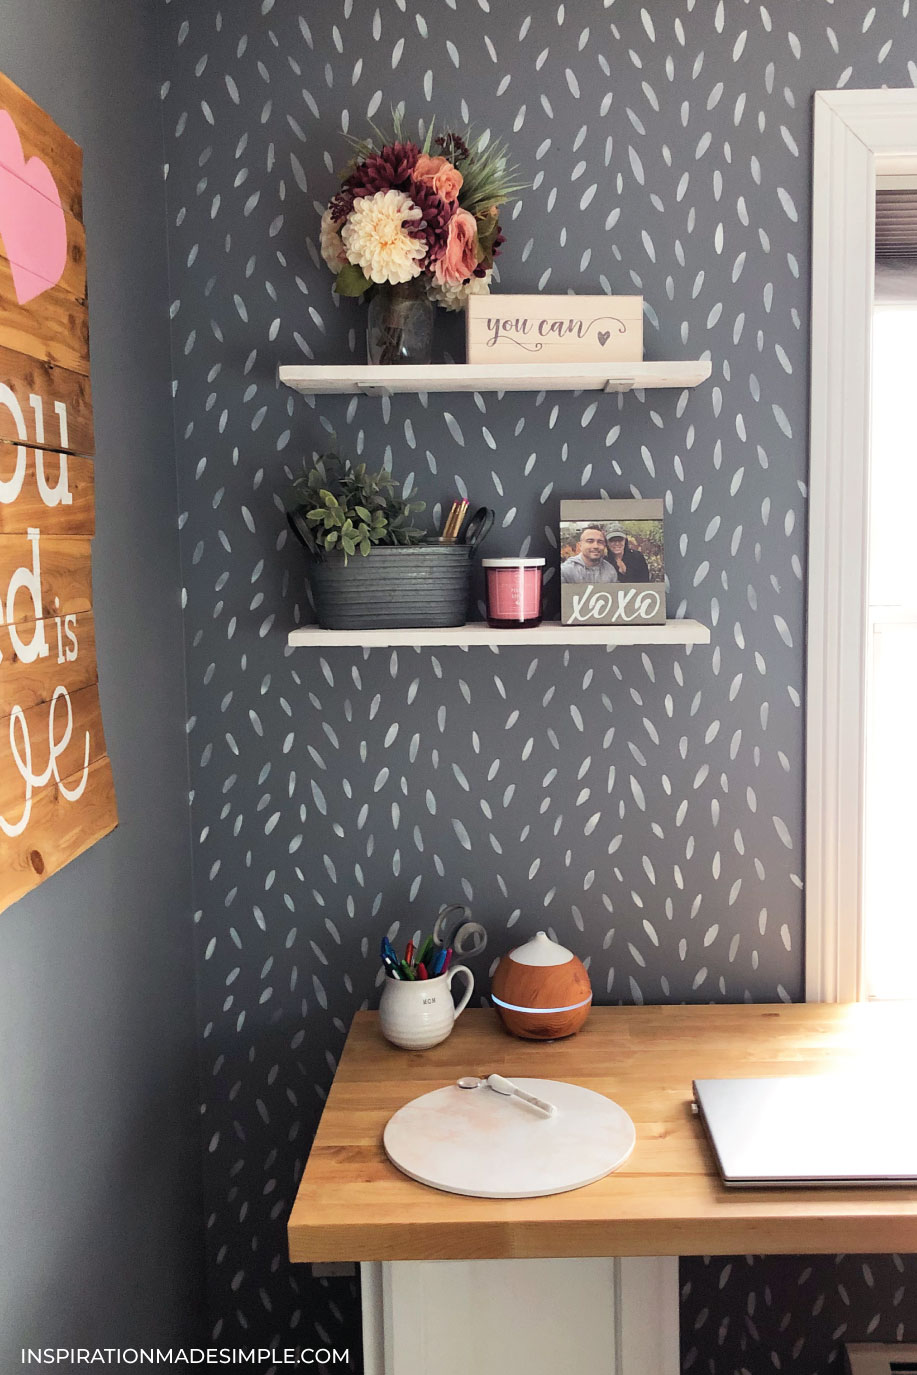 DIY Floating Office Shelves